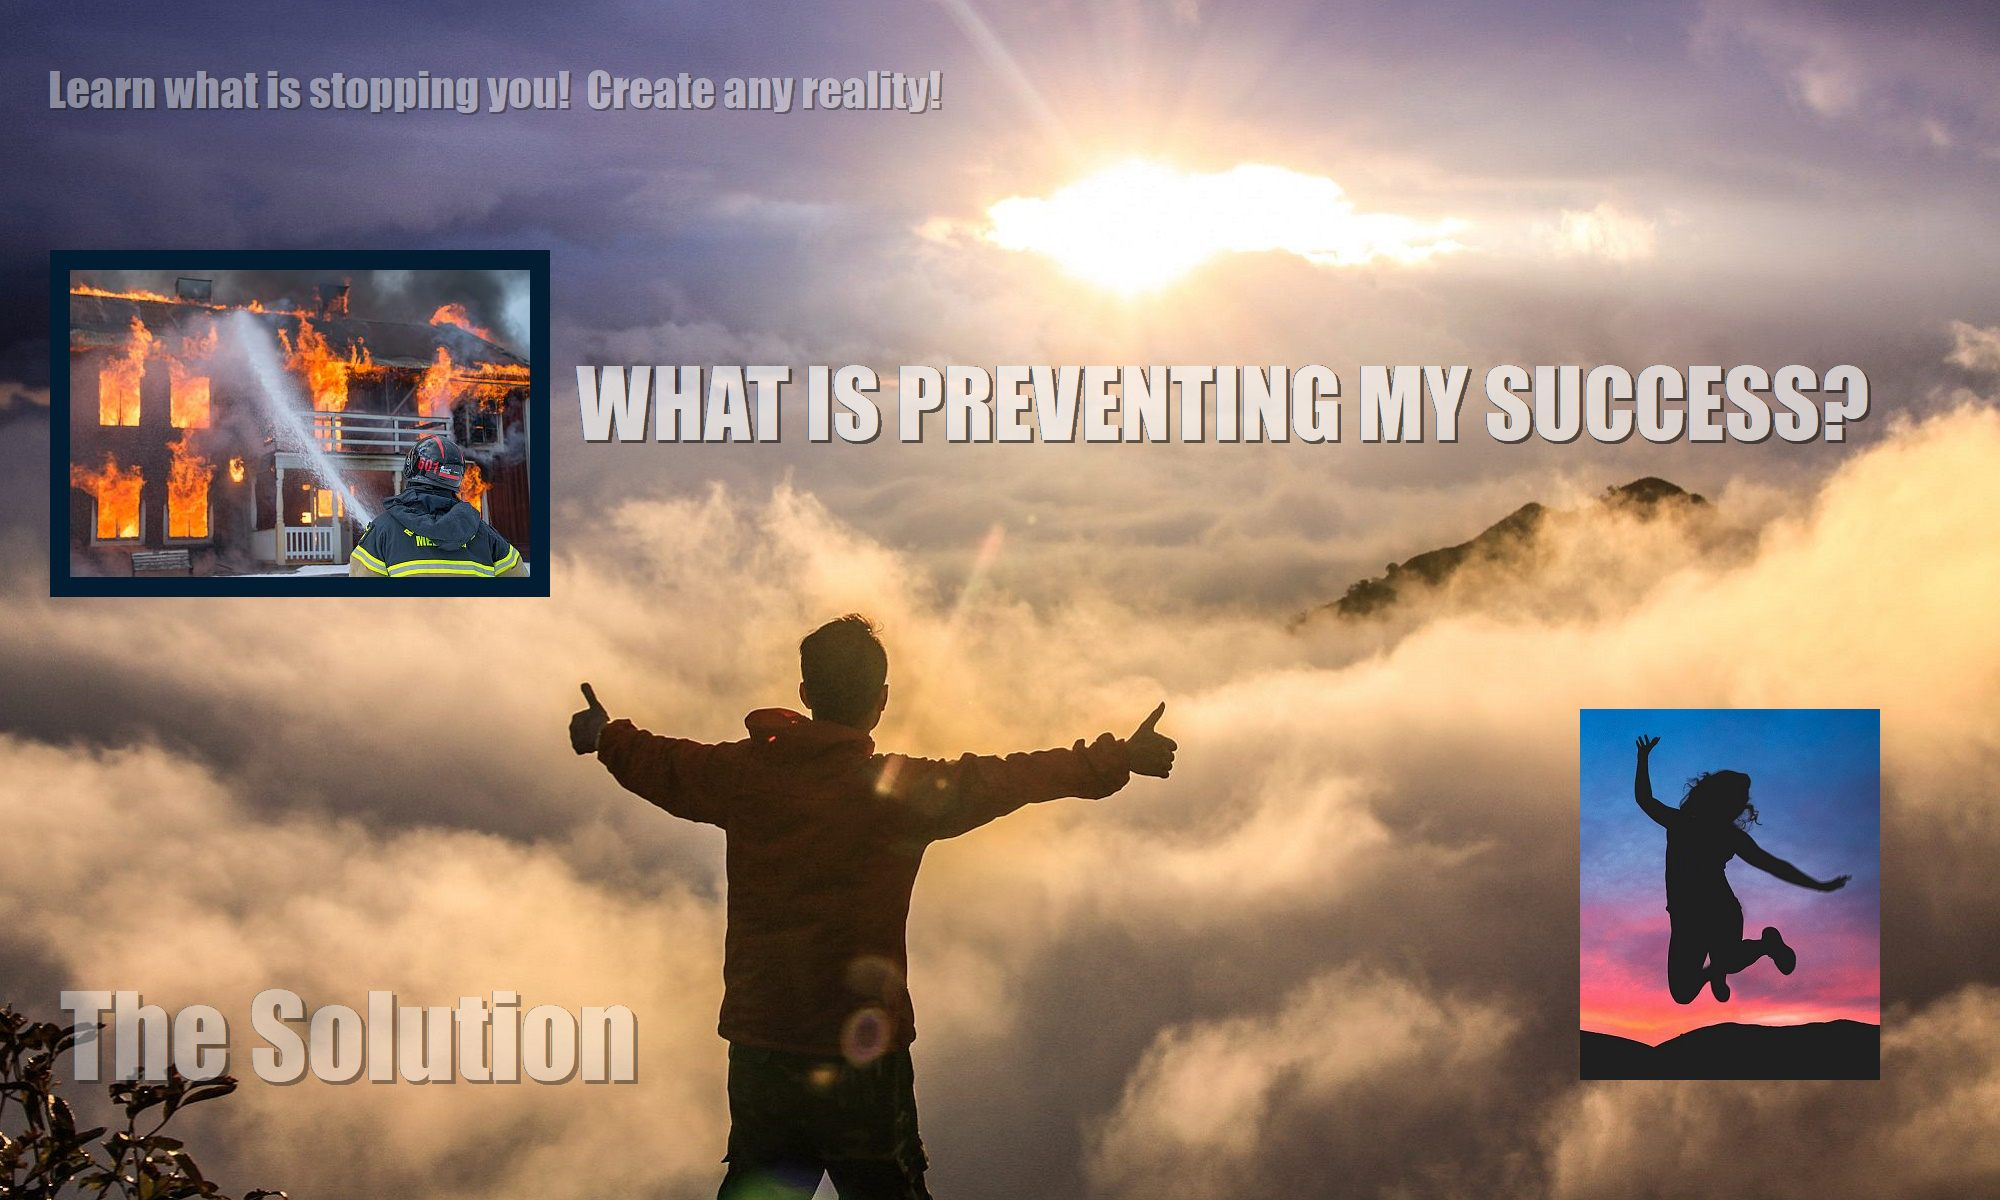 what-is-preventing-my-success-2000